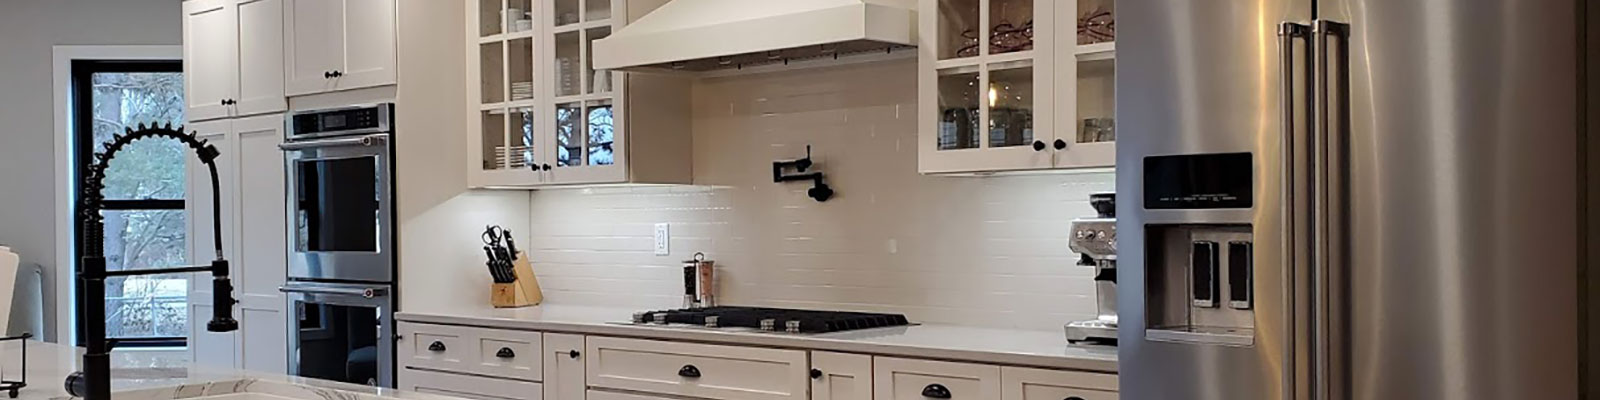 Kitchen And Bathroom Remodeling Contractor 3 Day Kitchen Bath